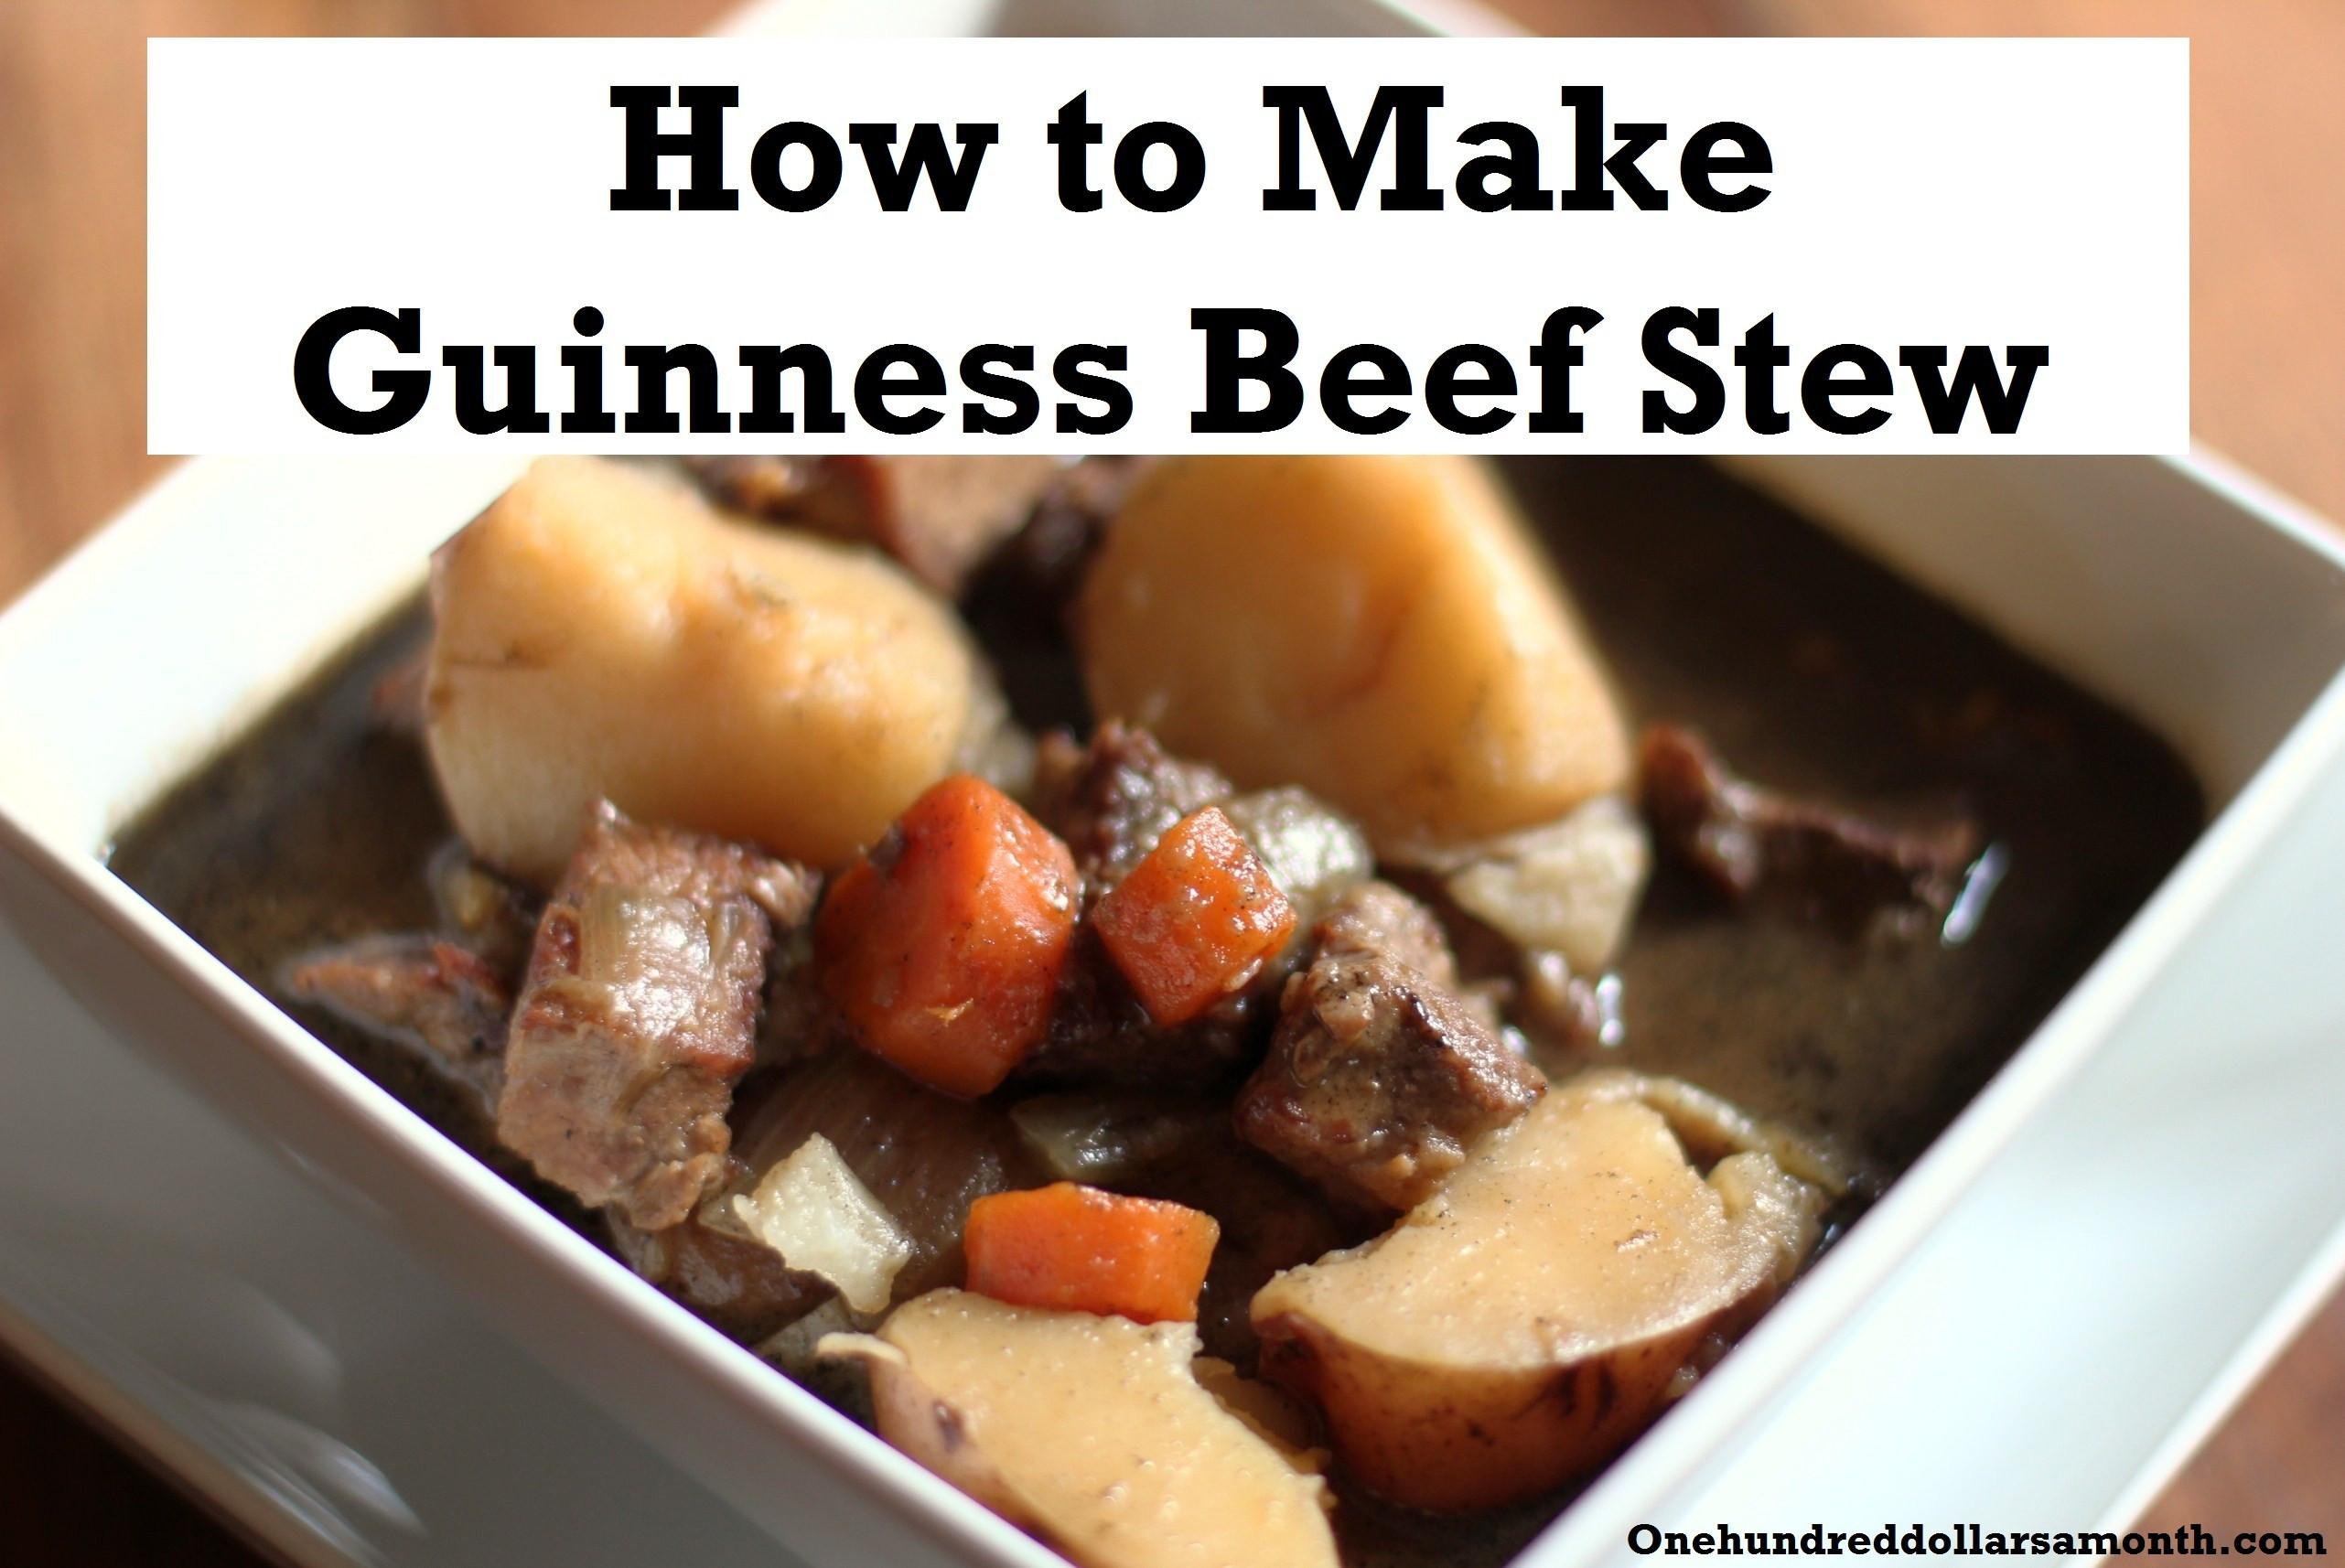 How To Make Stew  St Patrick s Day Recipe How to Make Guinness Beef Stew